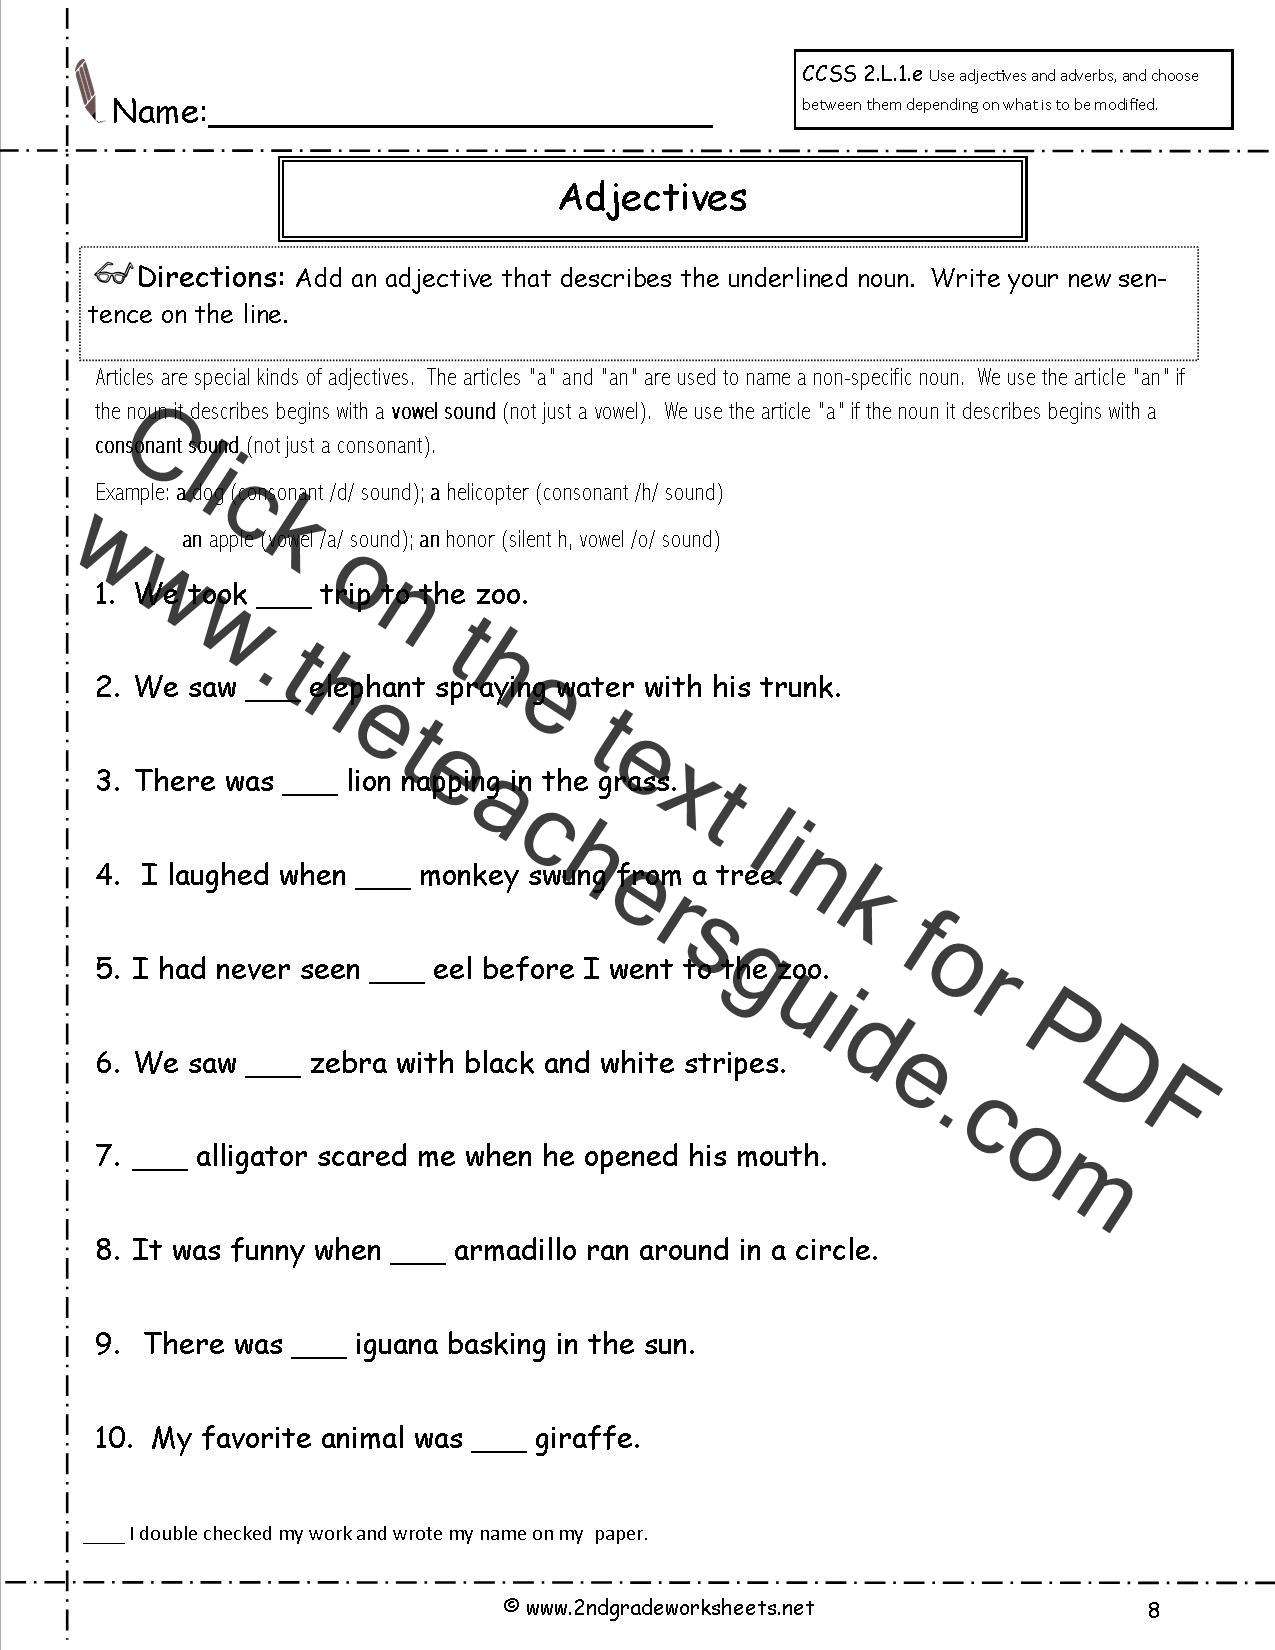 Worksheet Free Worksheets For Grade 2 free languagegrammar worksheets and printouts adjectives worksheets